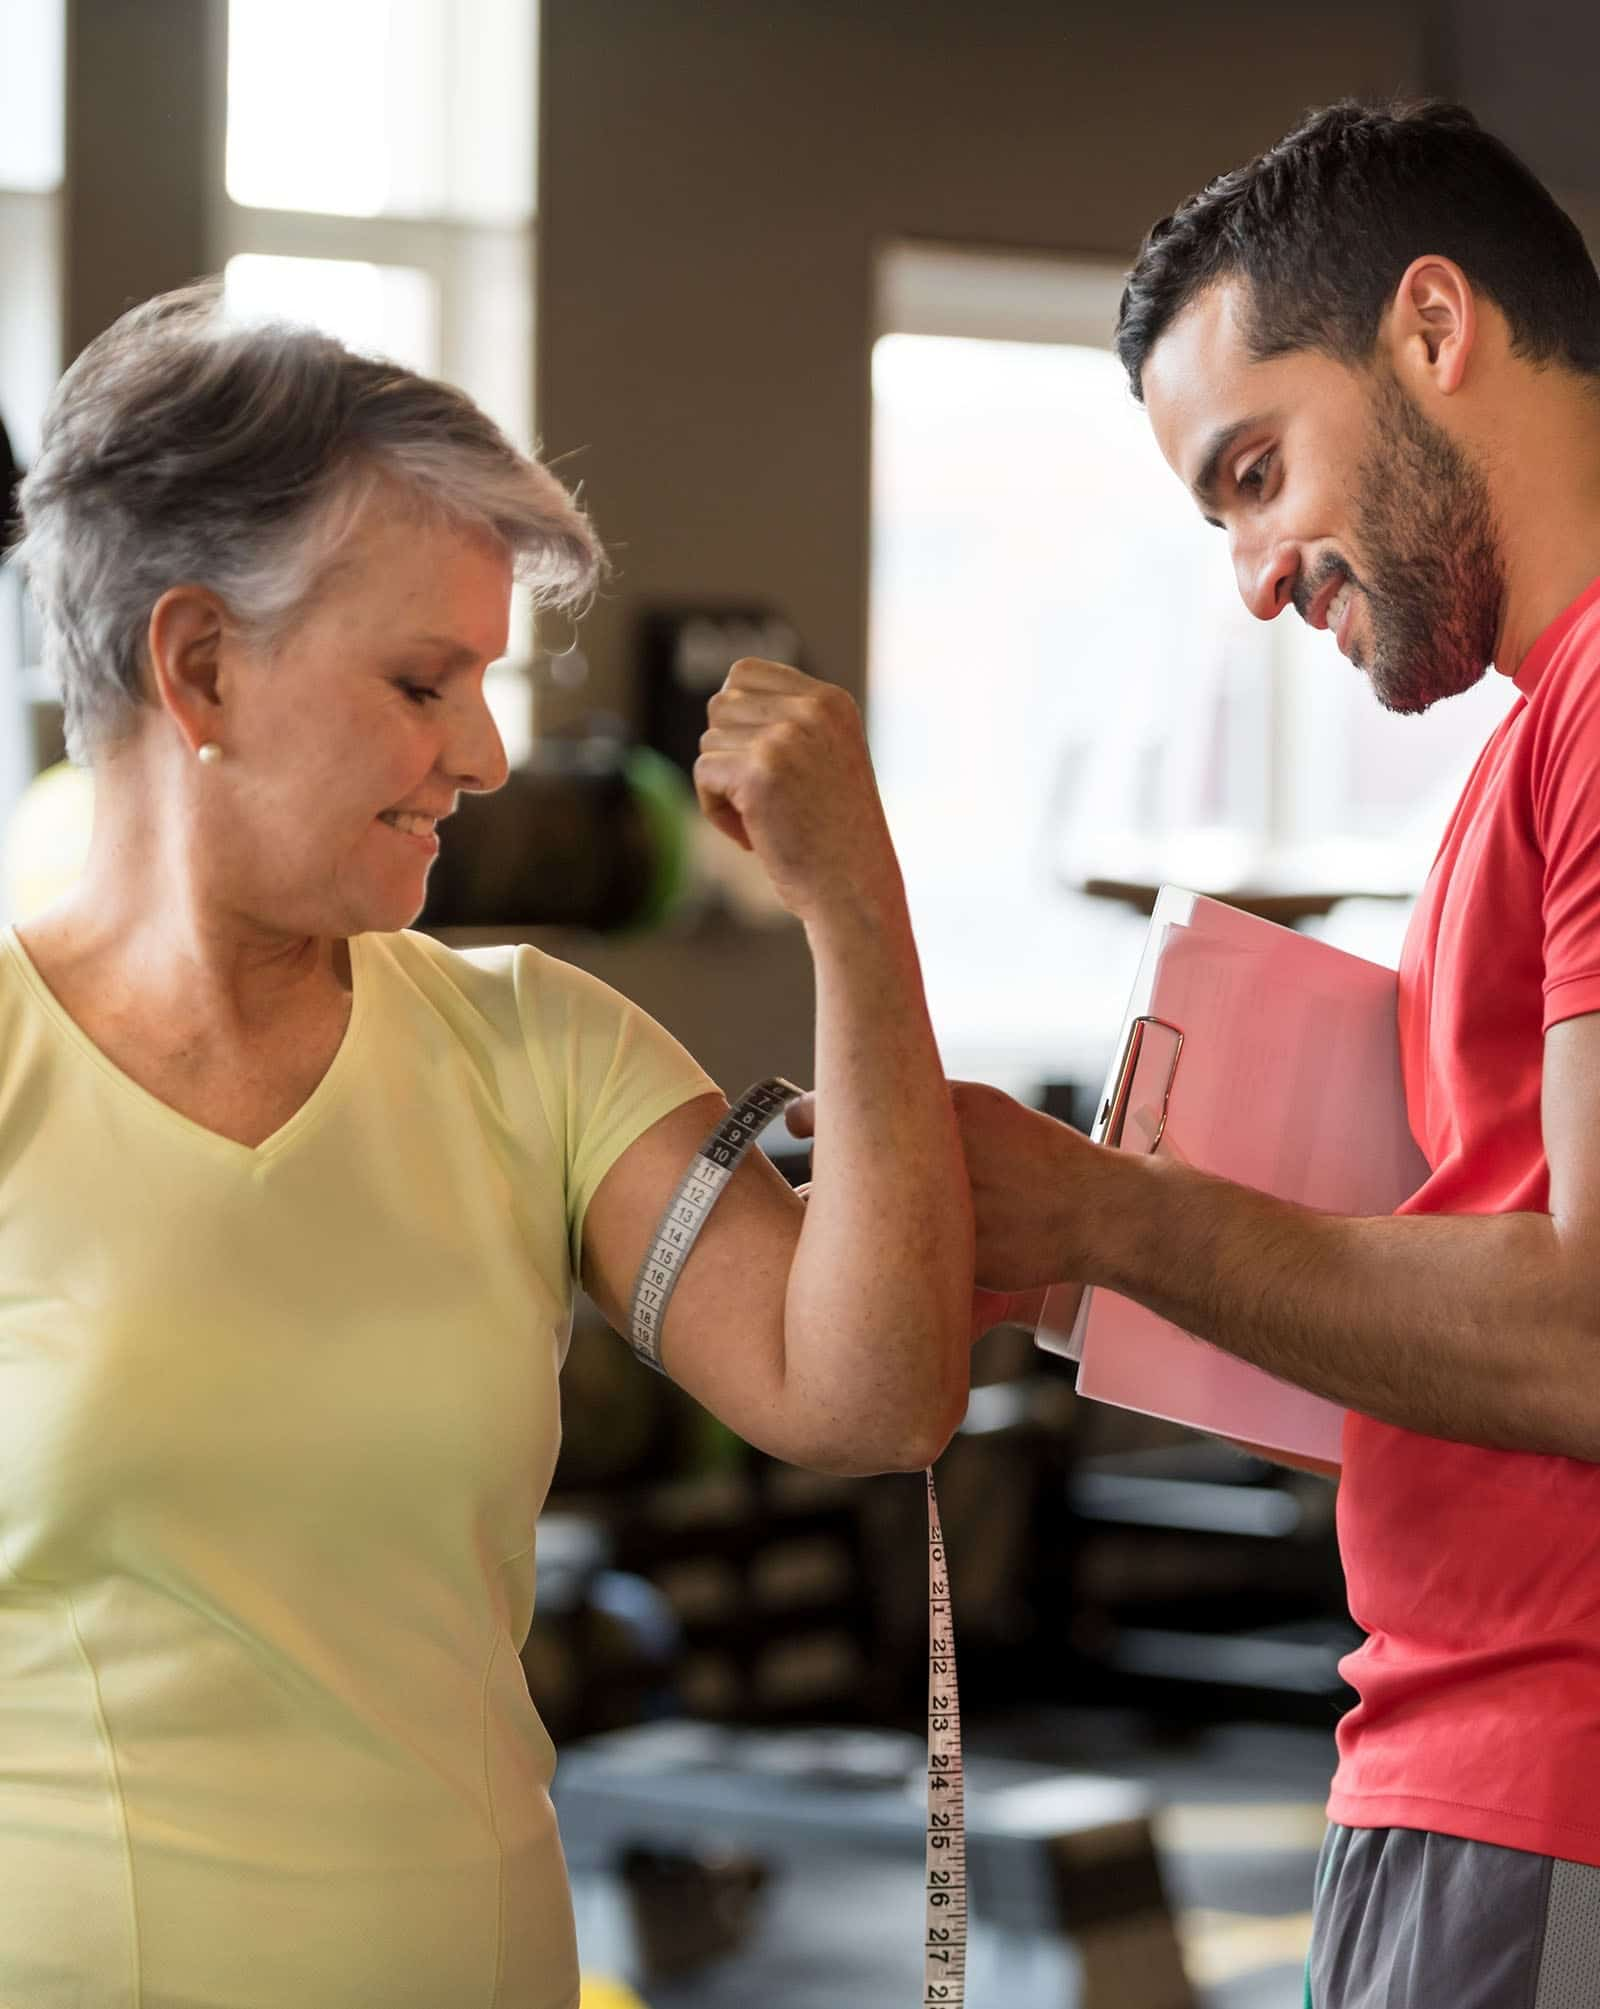 male nutrition and wellness coach measuring a woman's arm